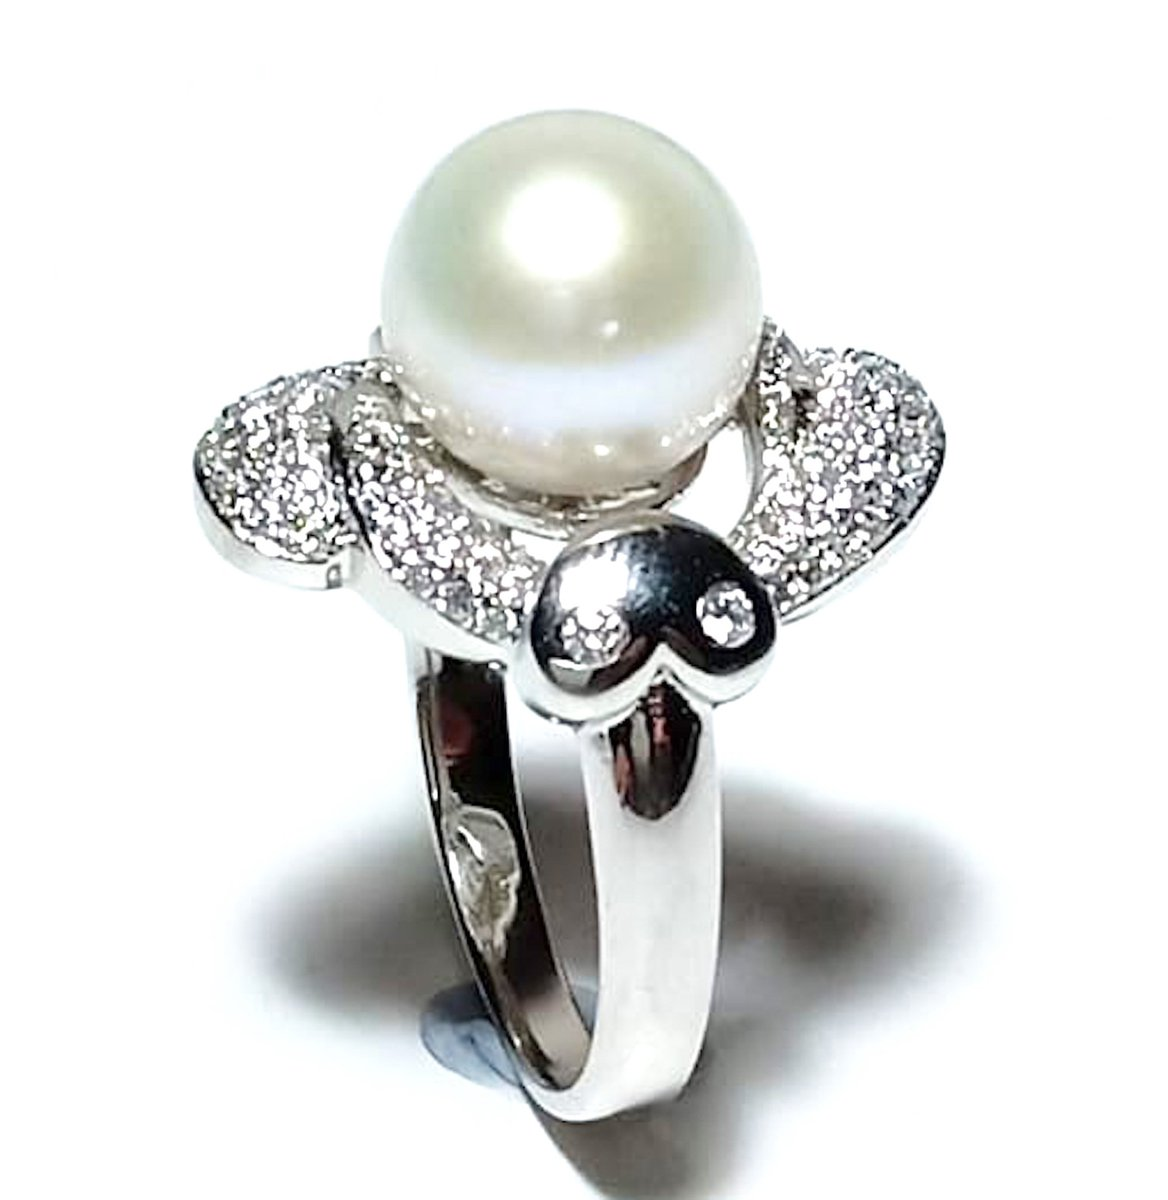 Excited to share the latest addition to my #etsy shop: Wedding Anniversary Best Gift! Mirror Luster Luster 9.5-10mm Round White Round Edison Cultured Quality Pearl Solitaire Ring Size 7  #white #anniversary #round #lovefriendship #yes #no #pearl